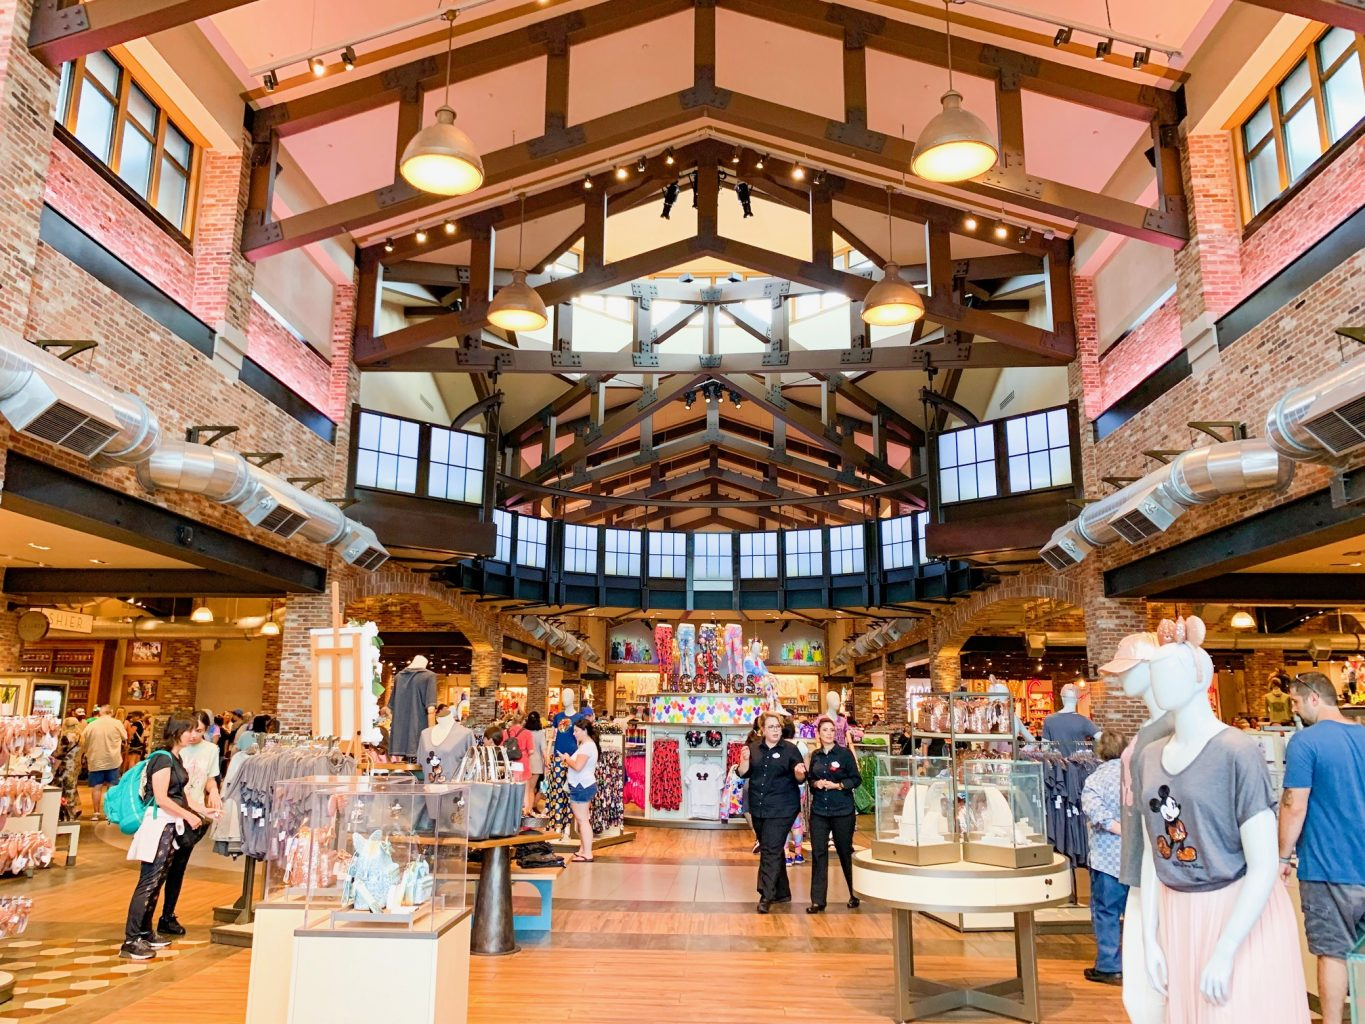 Inside of large Disney Springs Store with a brick interior, lots of windows and open space, with several people walking around shopping